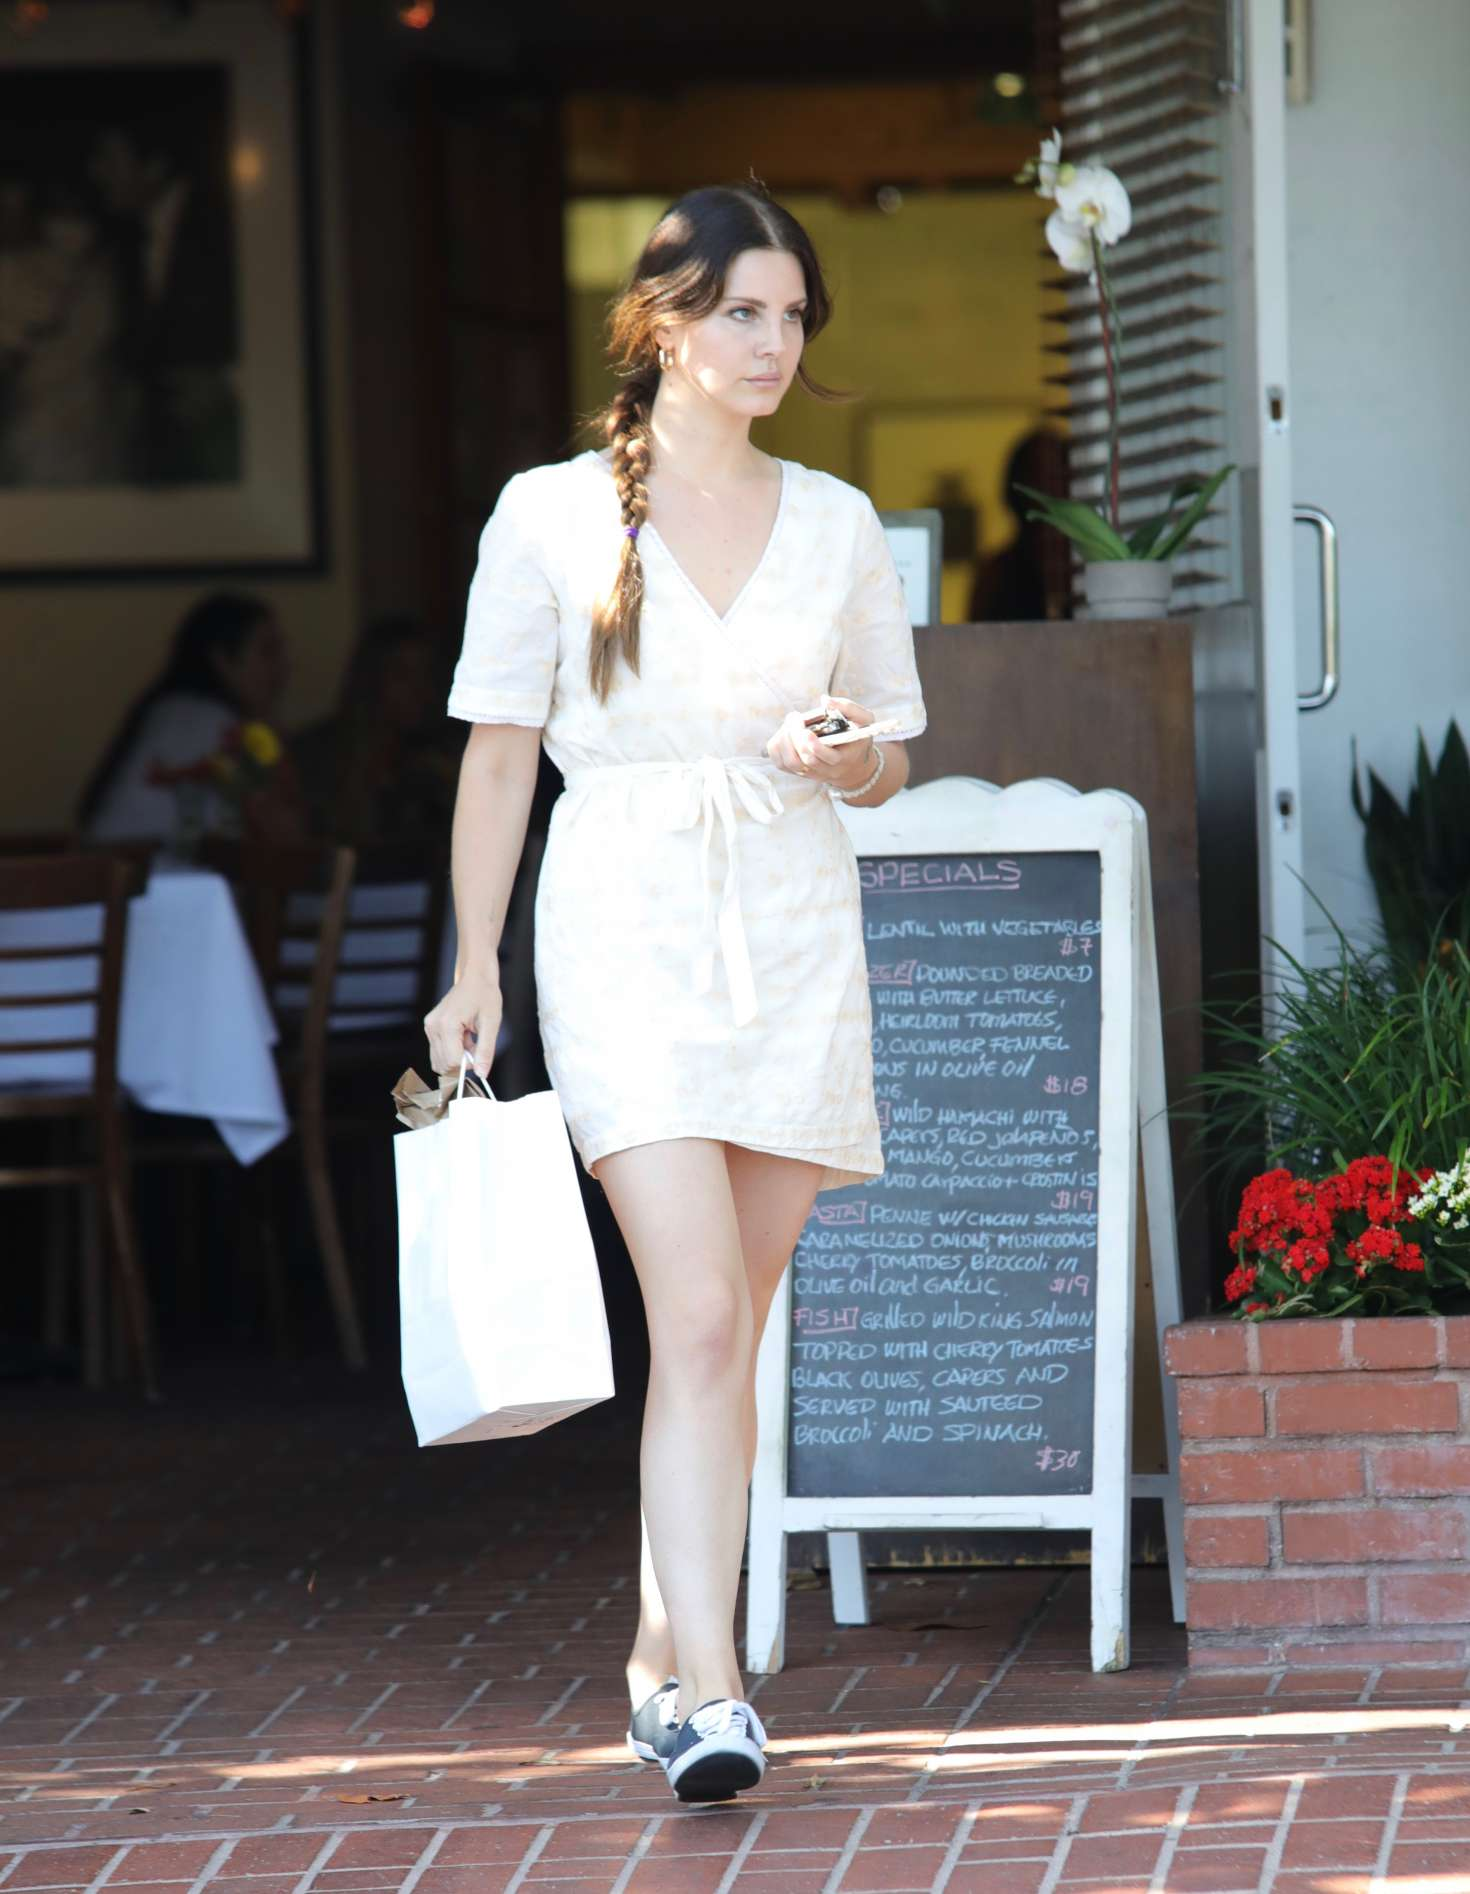 Lana del rey at mauro cafe in los angeles - 2019 year